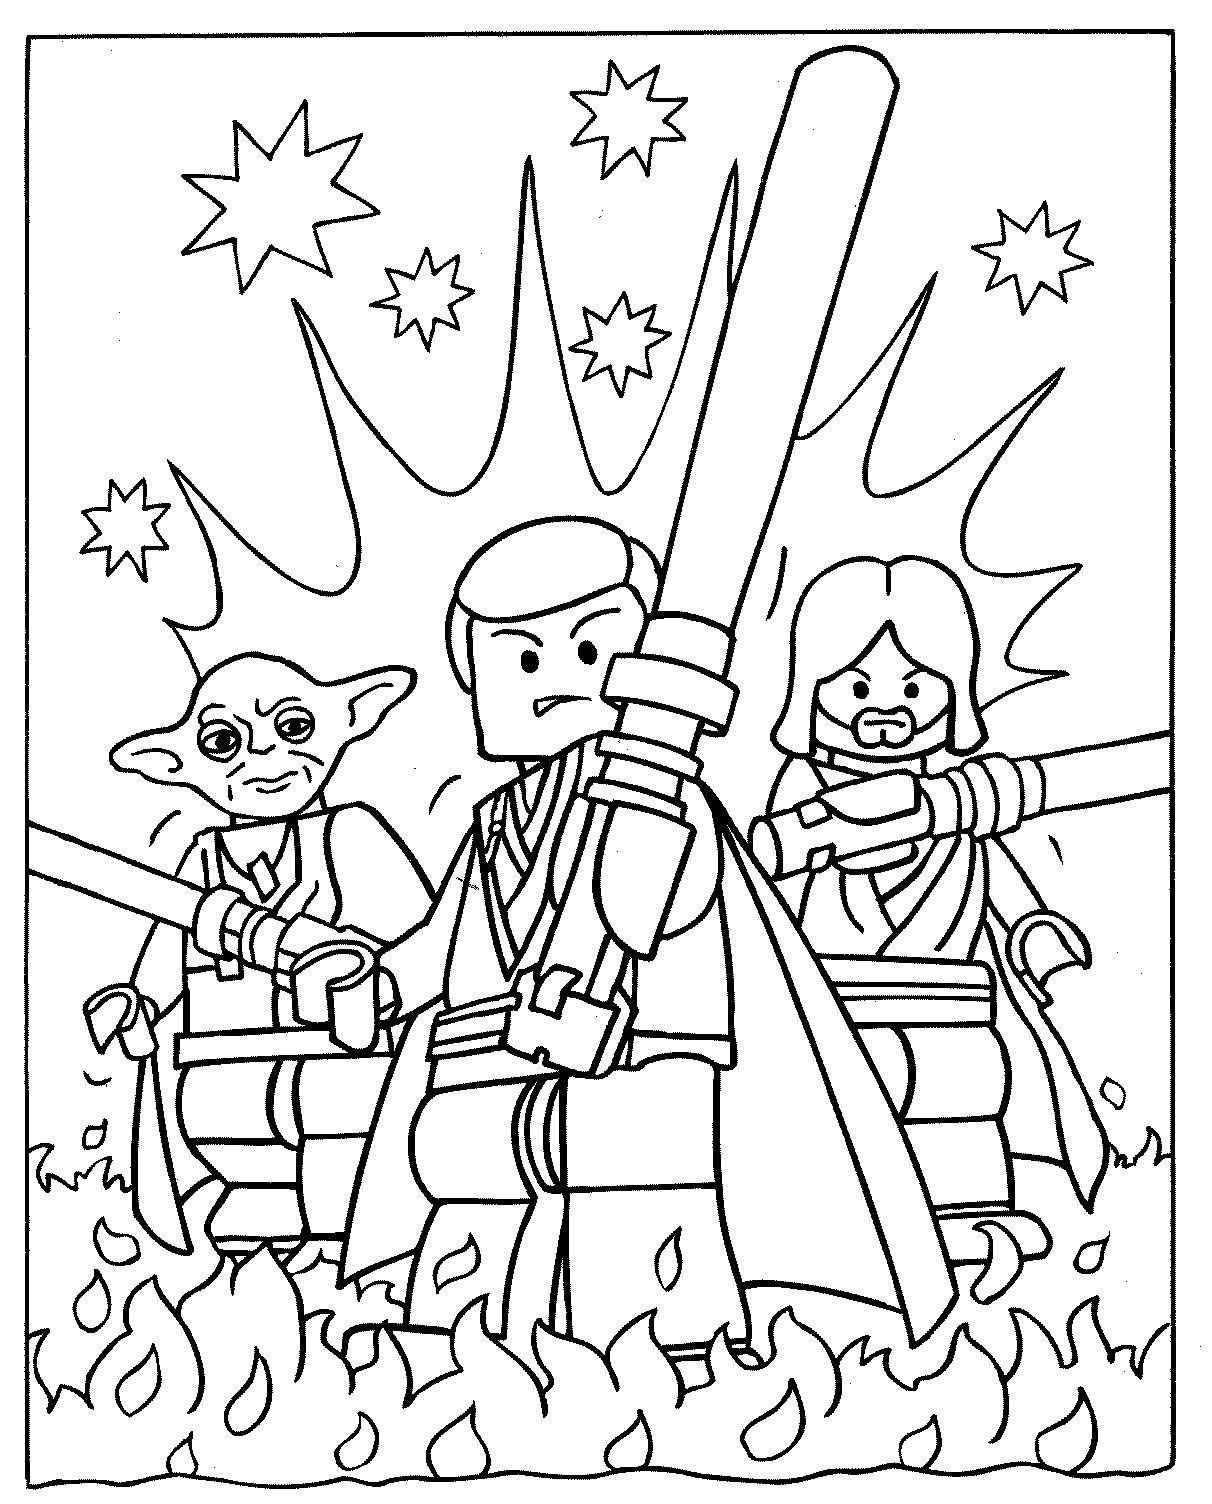 Star Wars Legos Coloring Pages Free | Lego Star Wars | printables ...